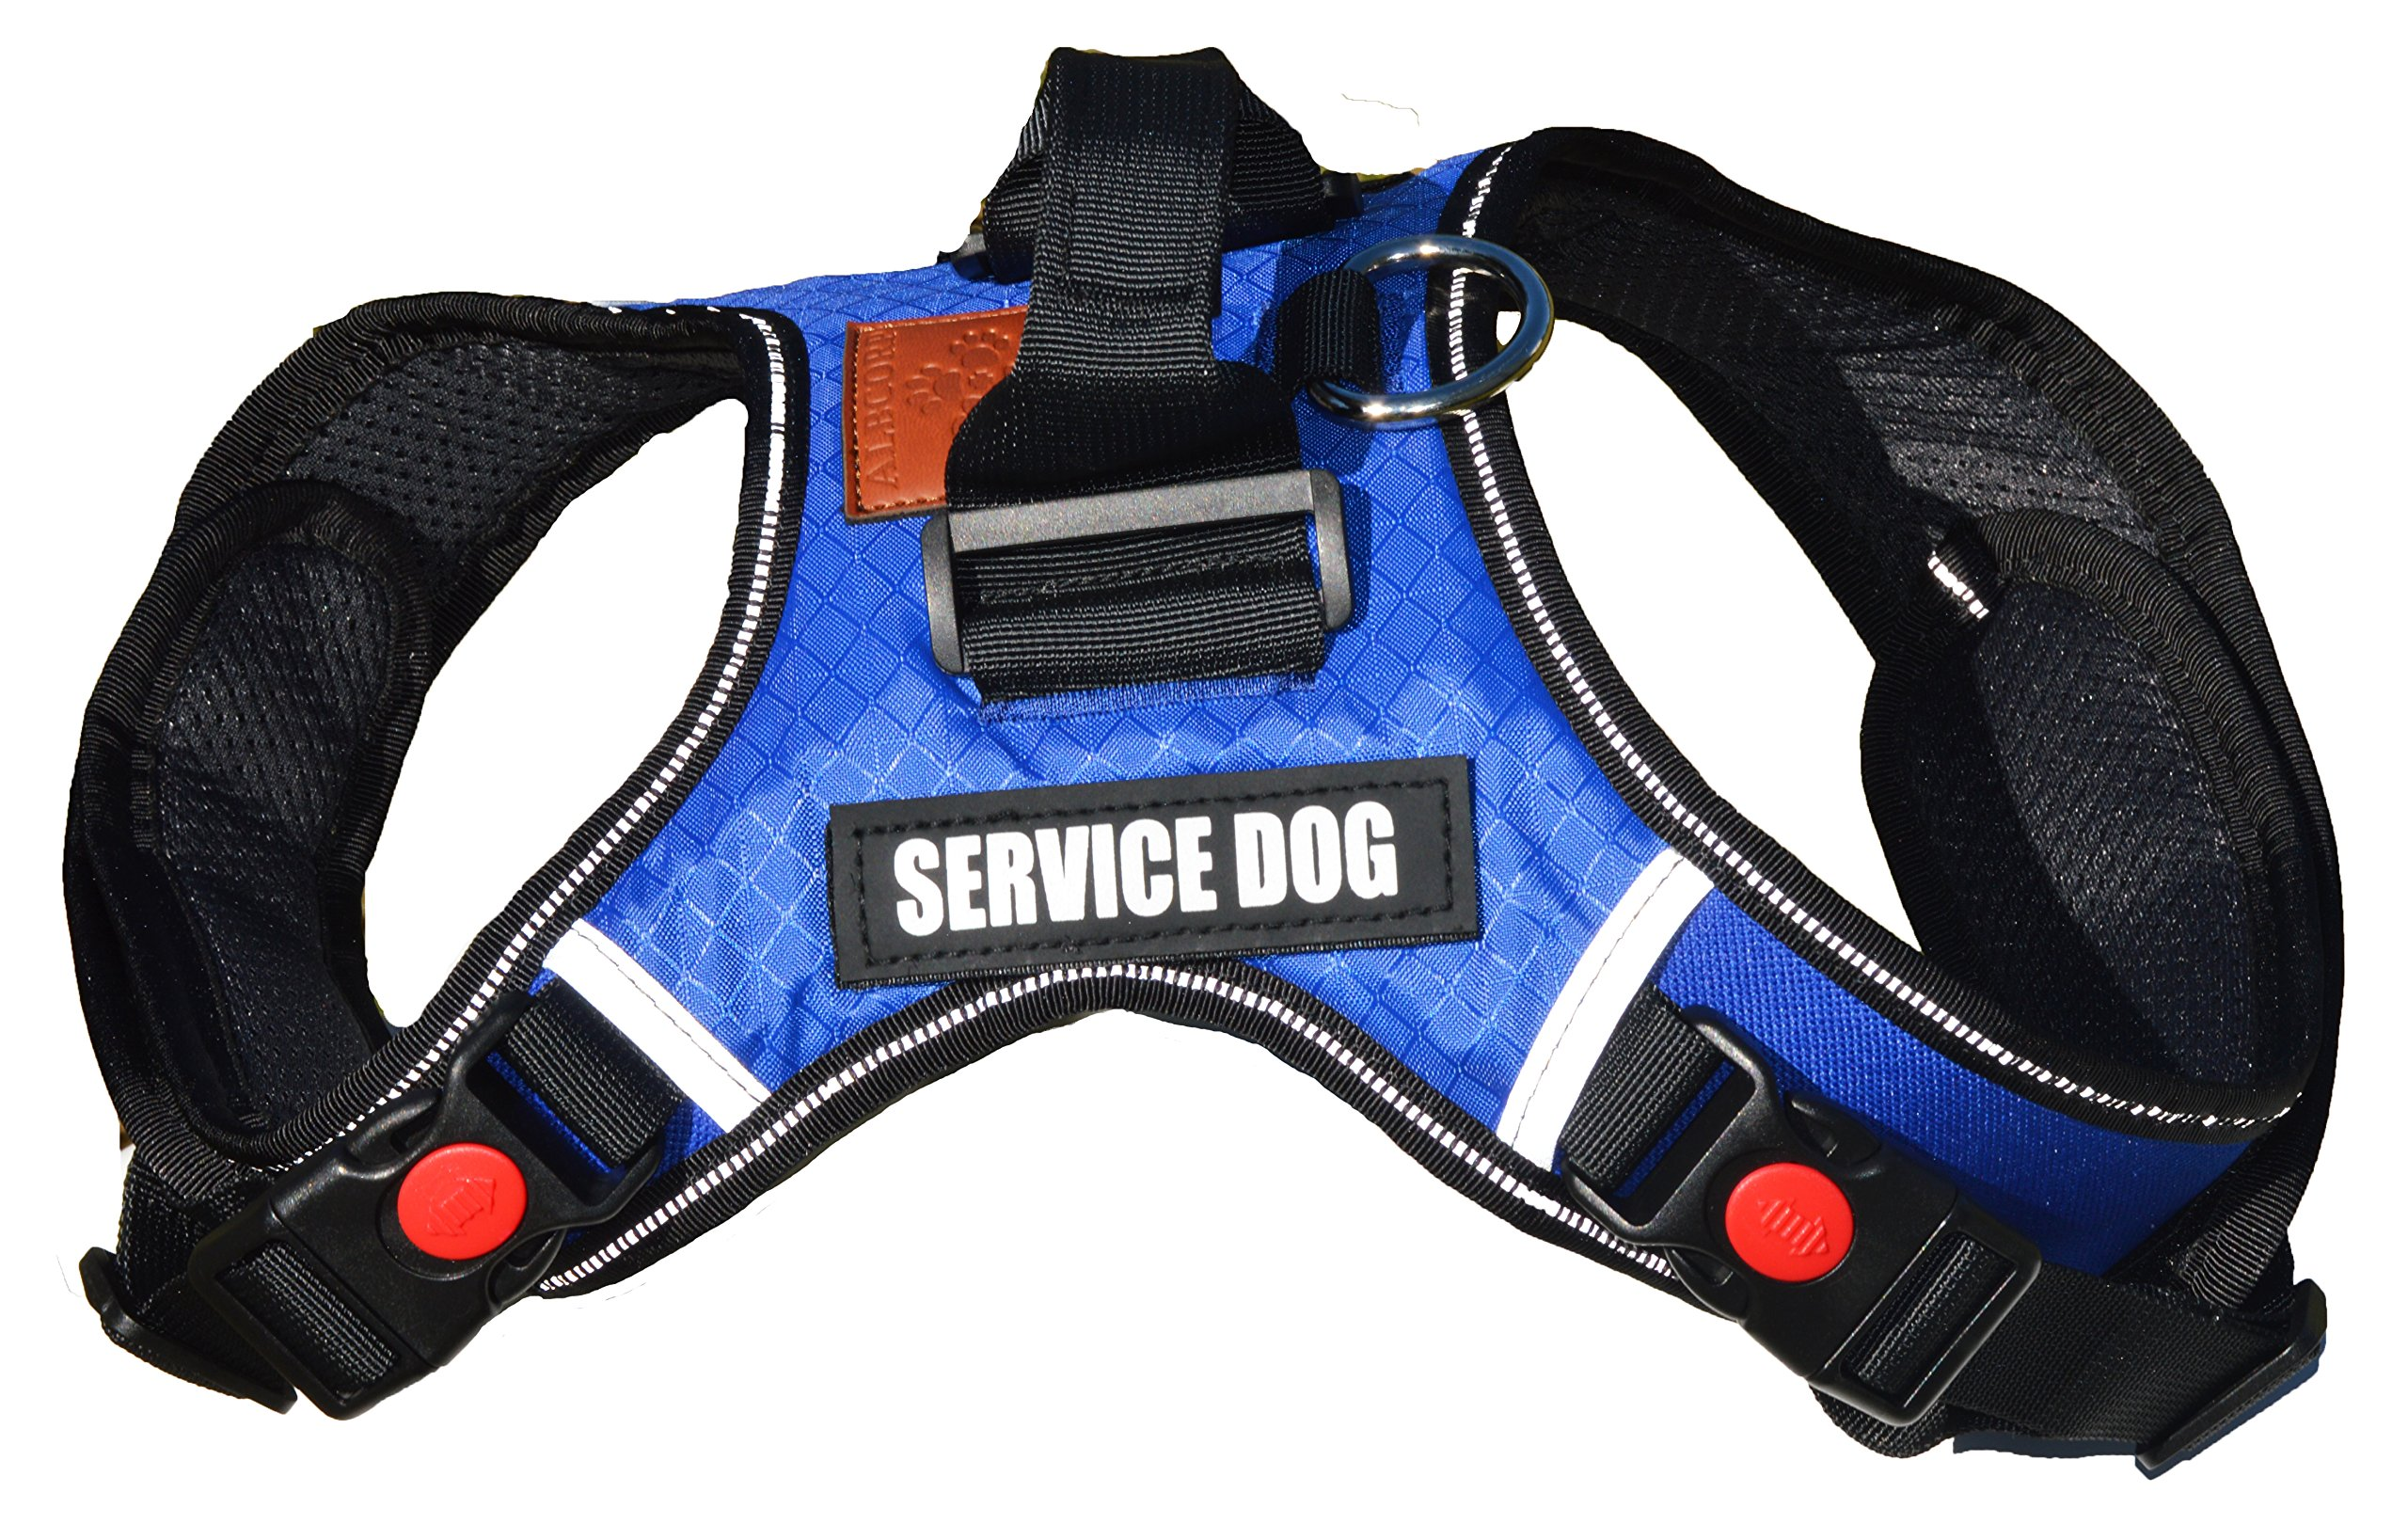 ALBCORP Reflective Service Dog Vest Harness, Woven Nylon, Neoprene Handle, Adjustable Straps, with Comfy Mesh Padding, and 2 Hook and Loop Removable Patches, Extra Large, Blue